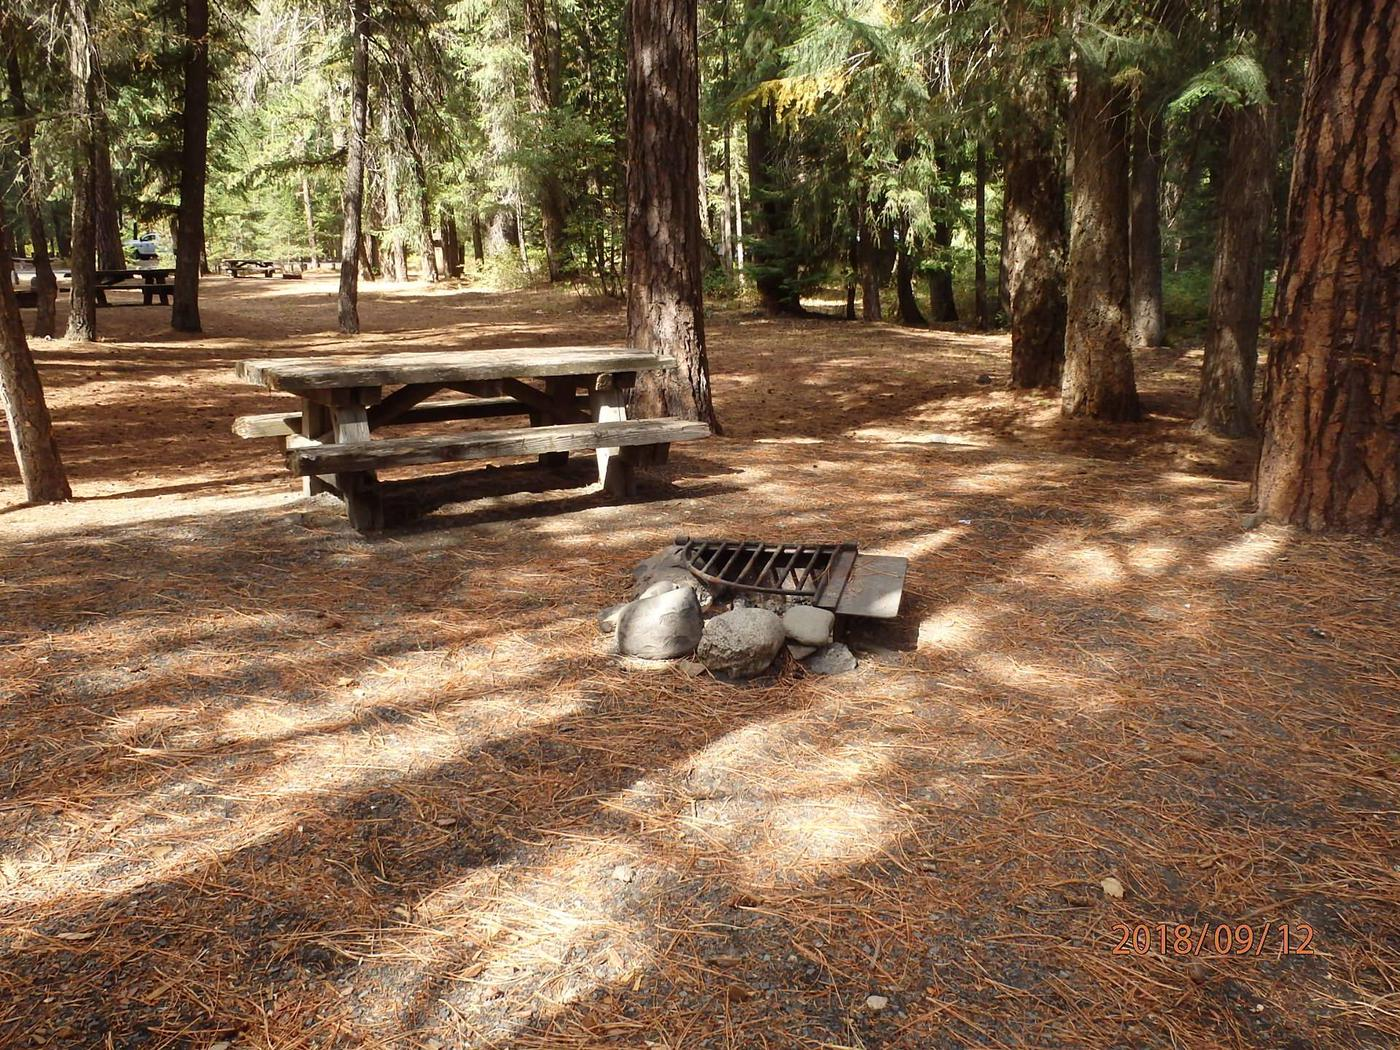 Little NachesSite offer space for two tents or an RV